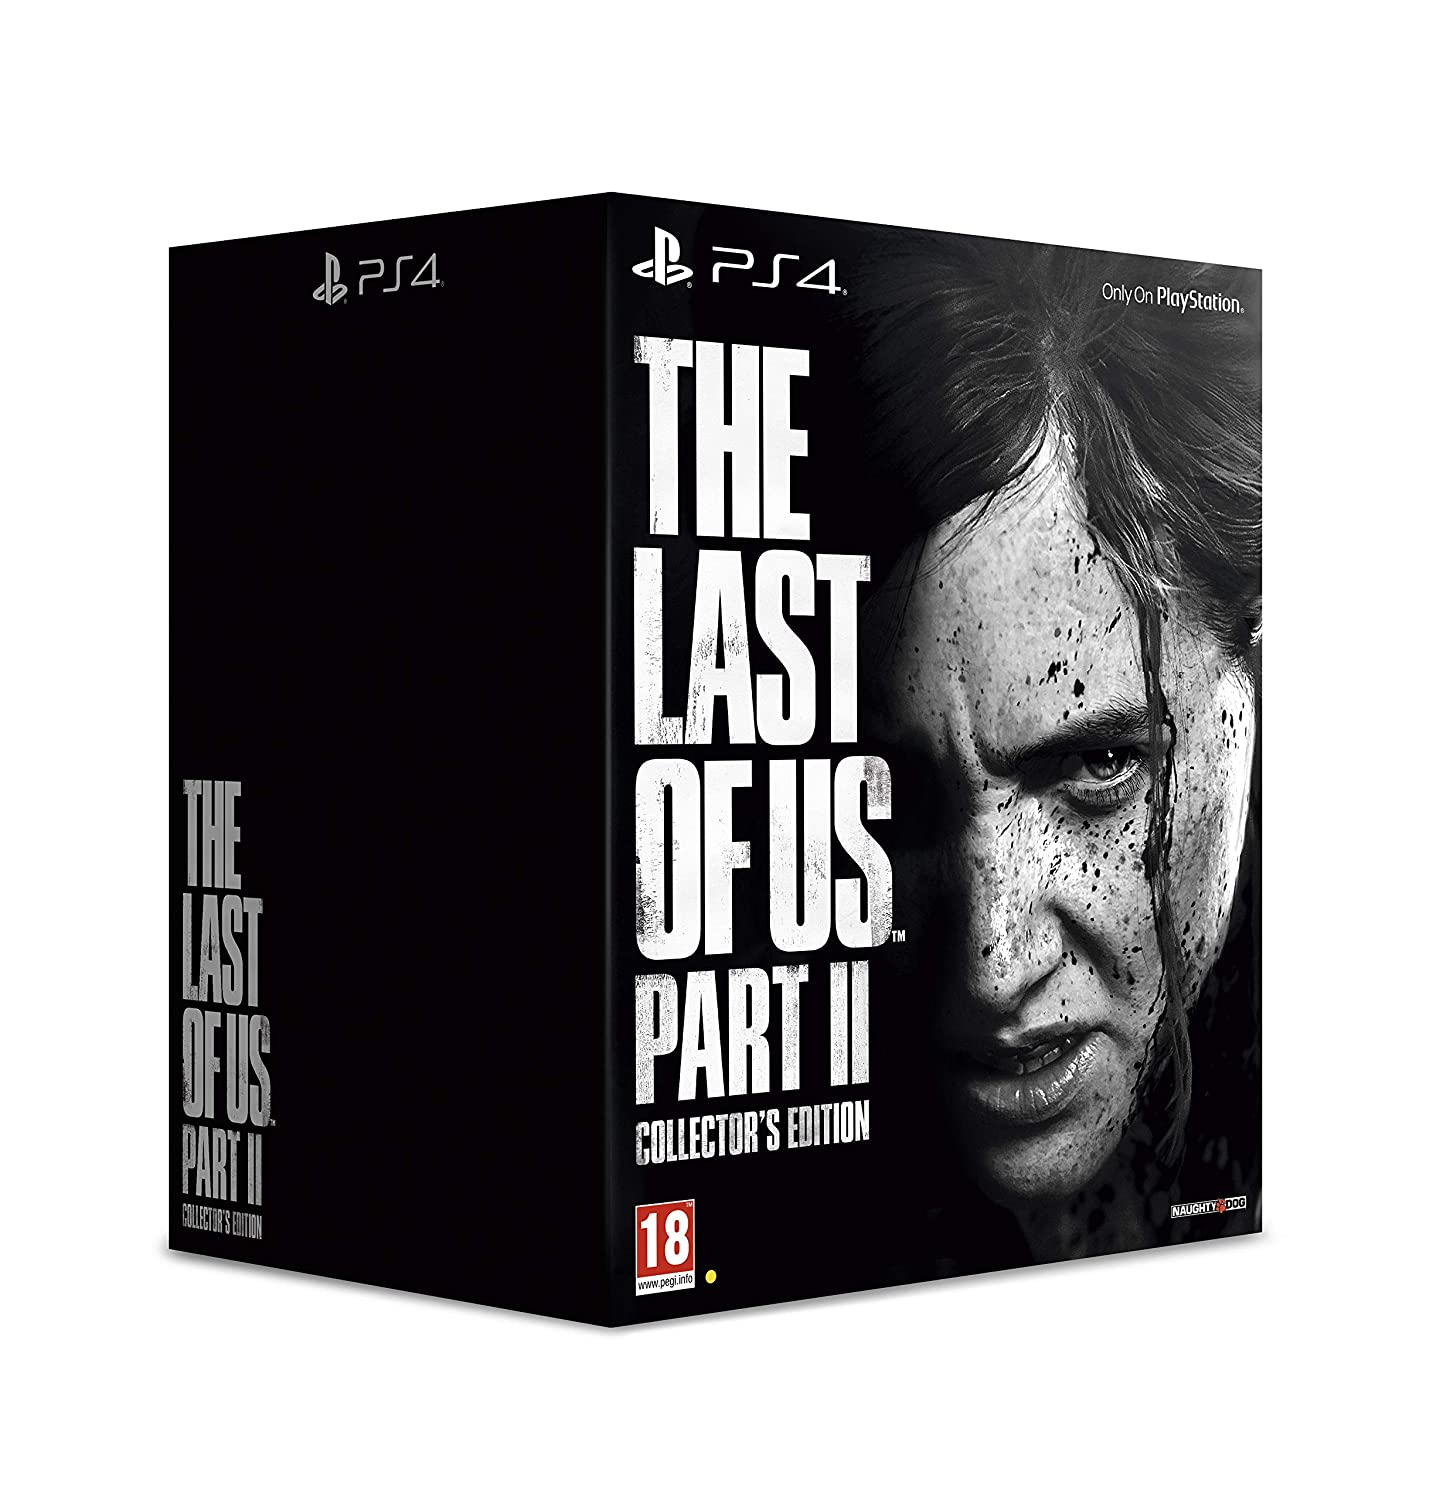 The Last of Us Part II (2) (Collector